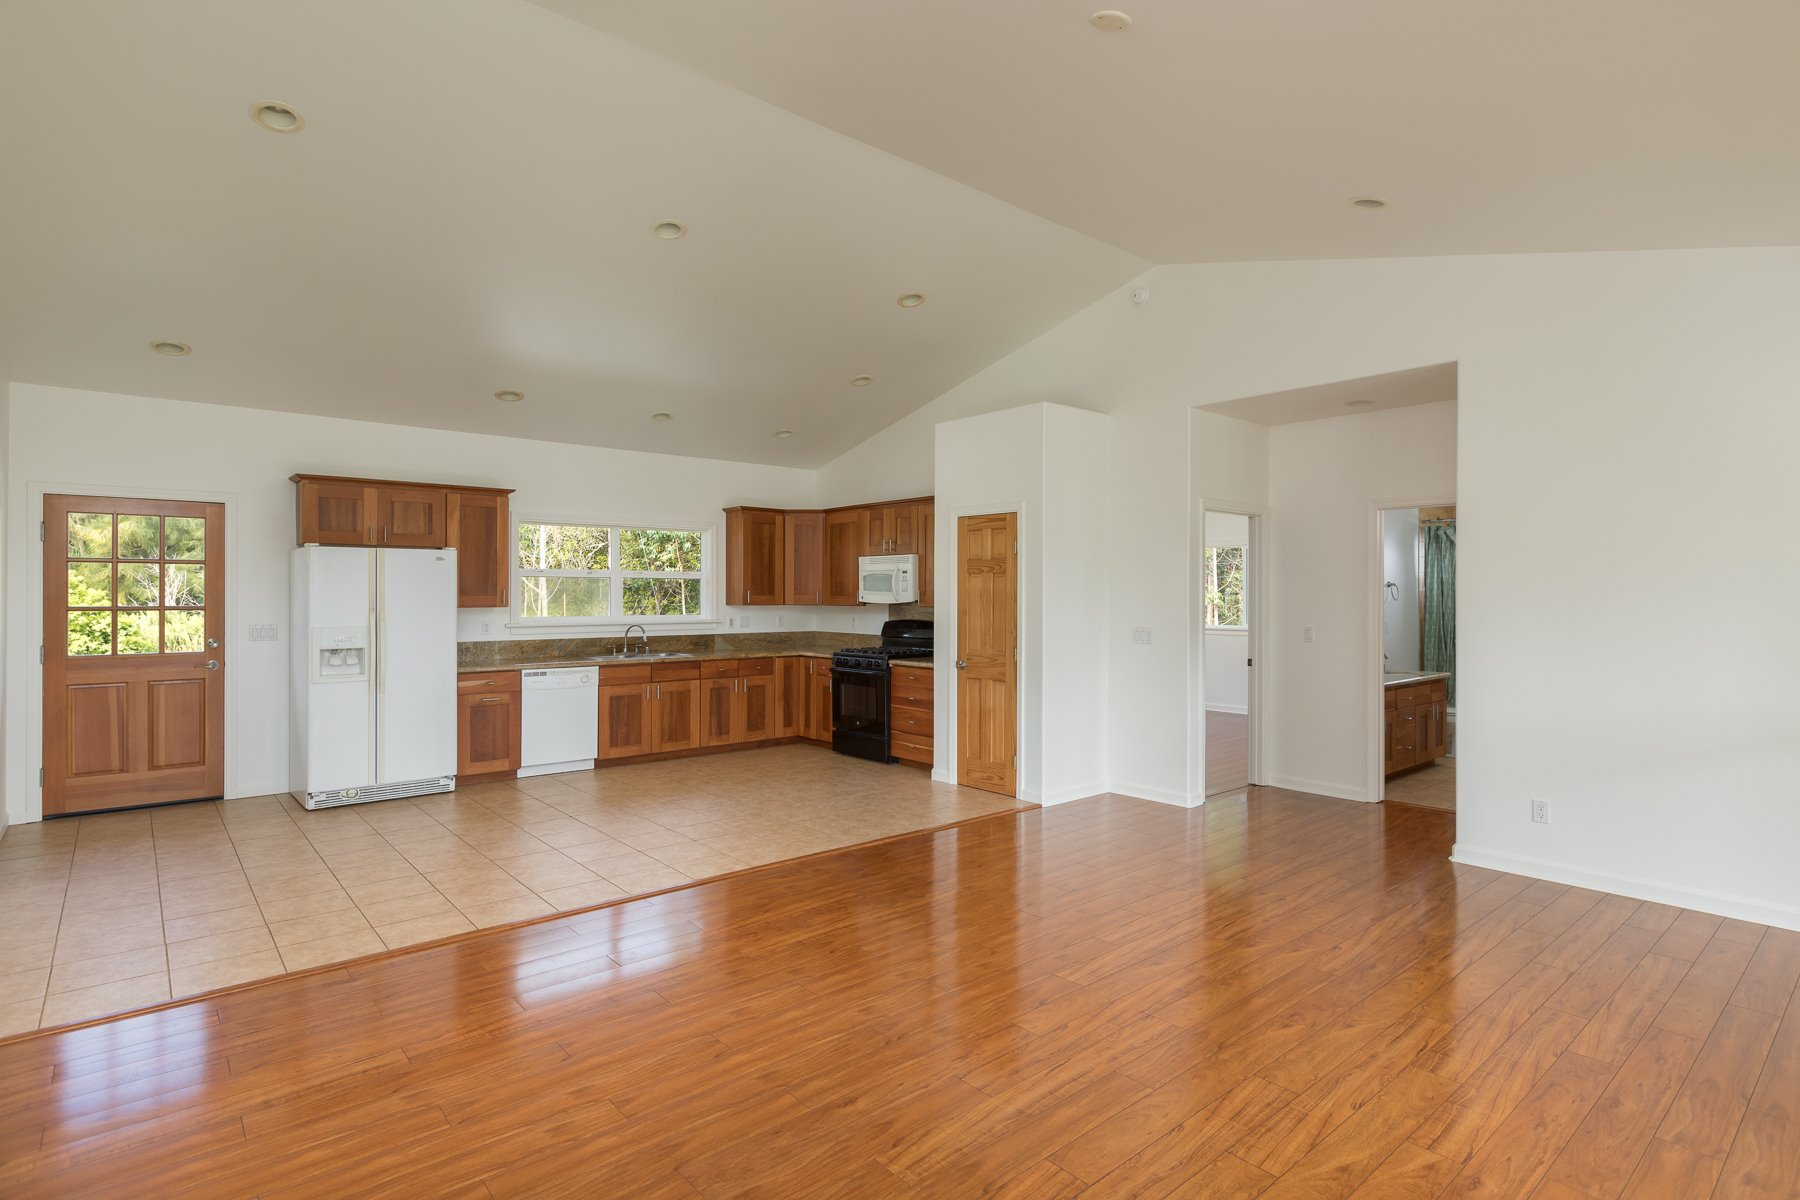 Kitchen meets the large living room; all natural light. Newer construction is rare to find Island-wide today and especially in this desirable low-density area of the Hamakua Coast.